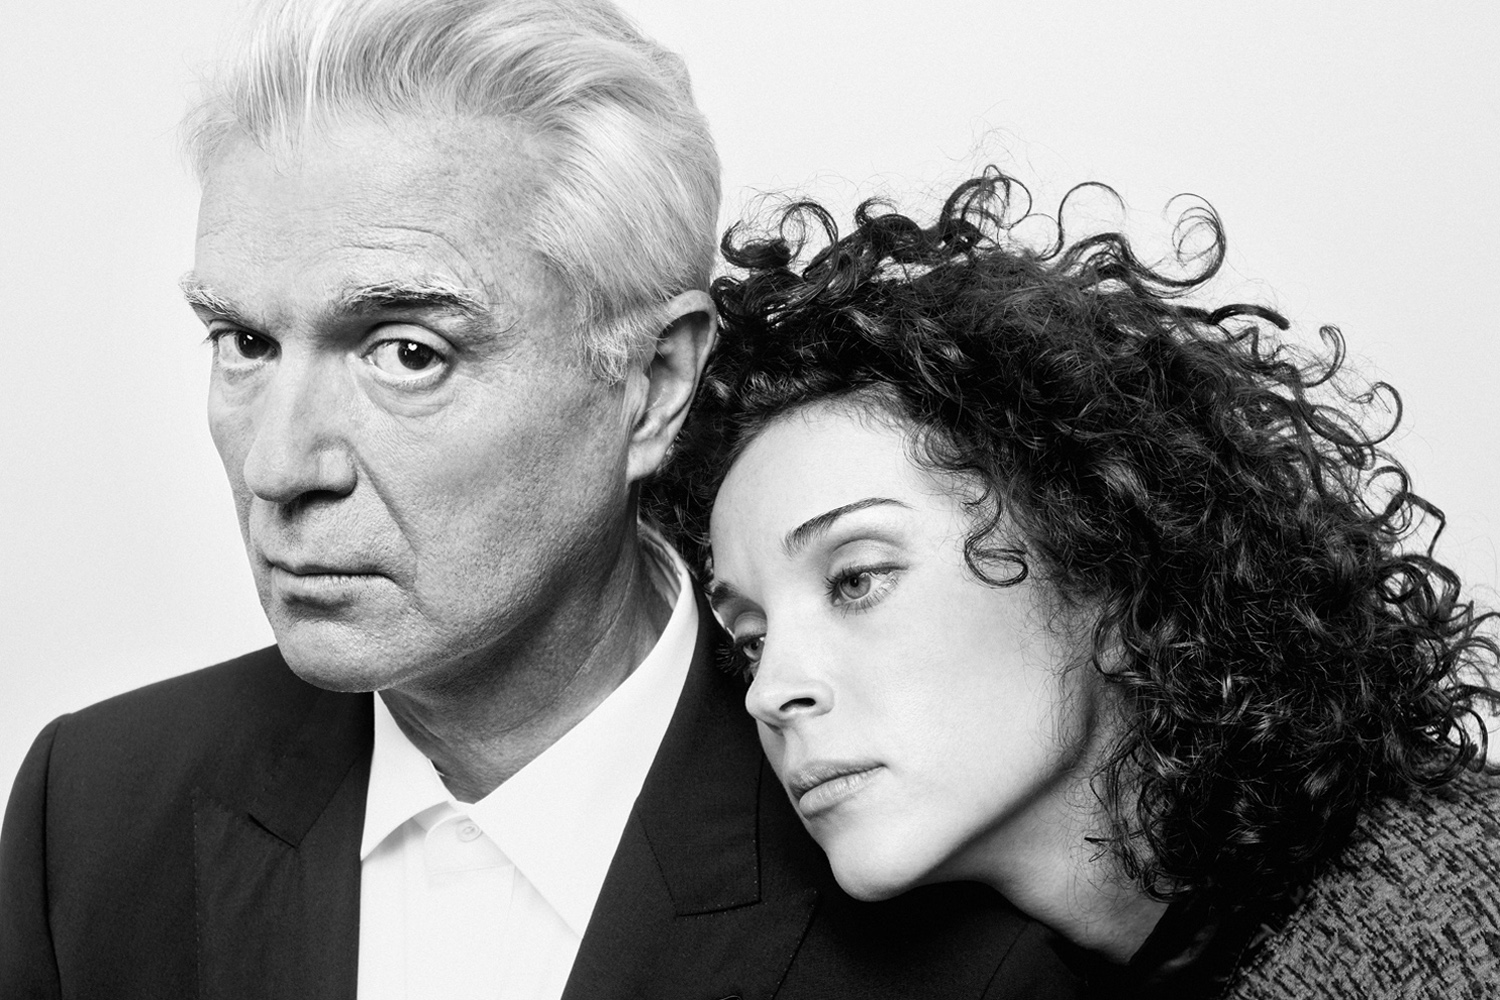 David Byrne (L) and St. Vincent (Annie Clark), Musicians. From  Dream Team,  September 17, 2012 issue.